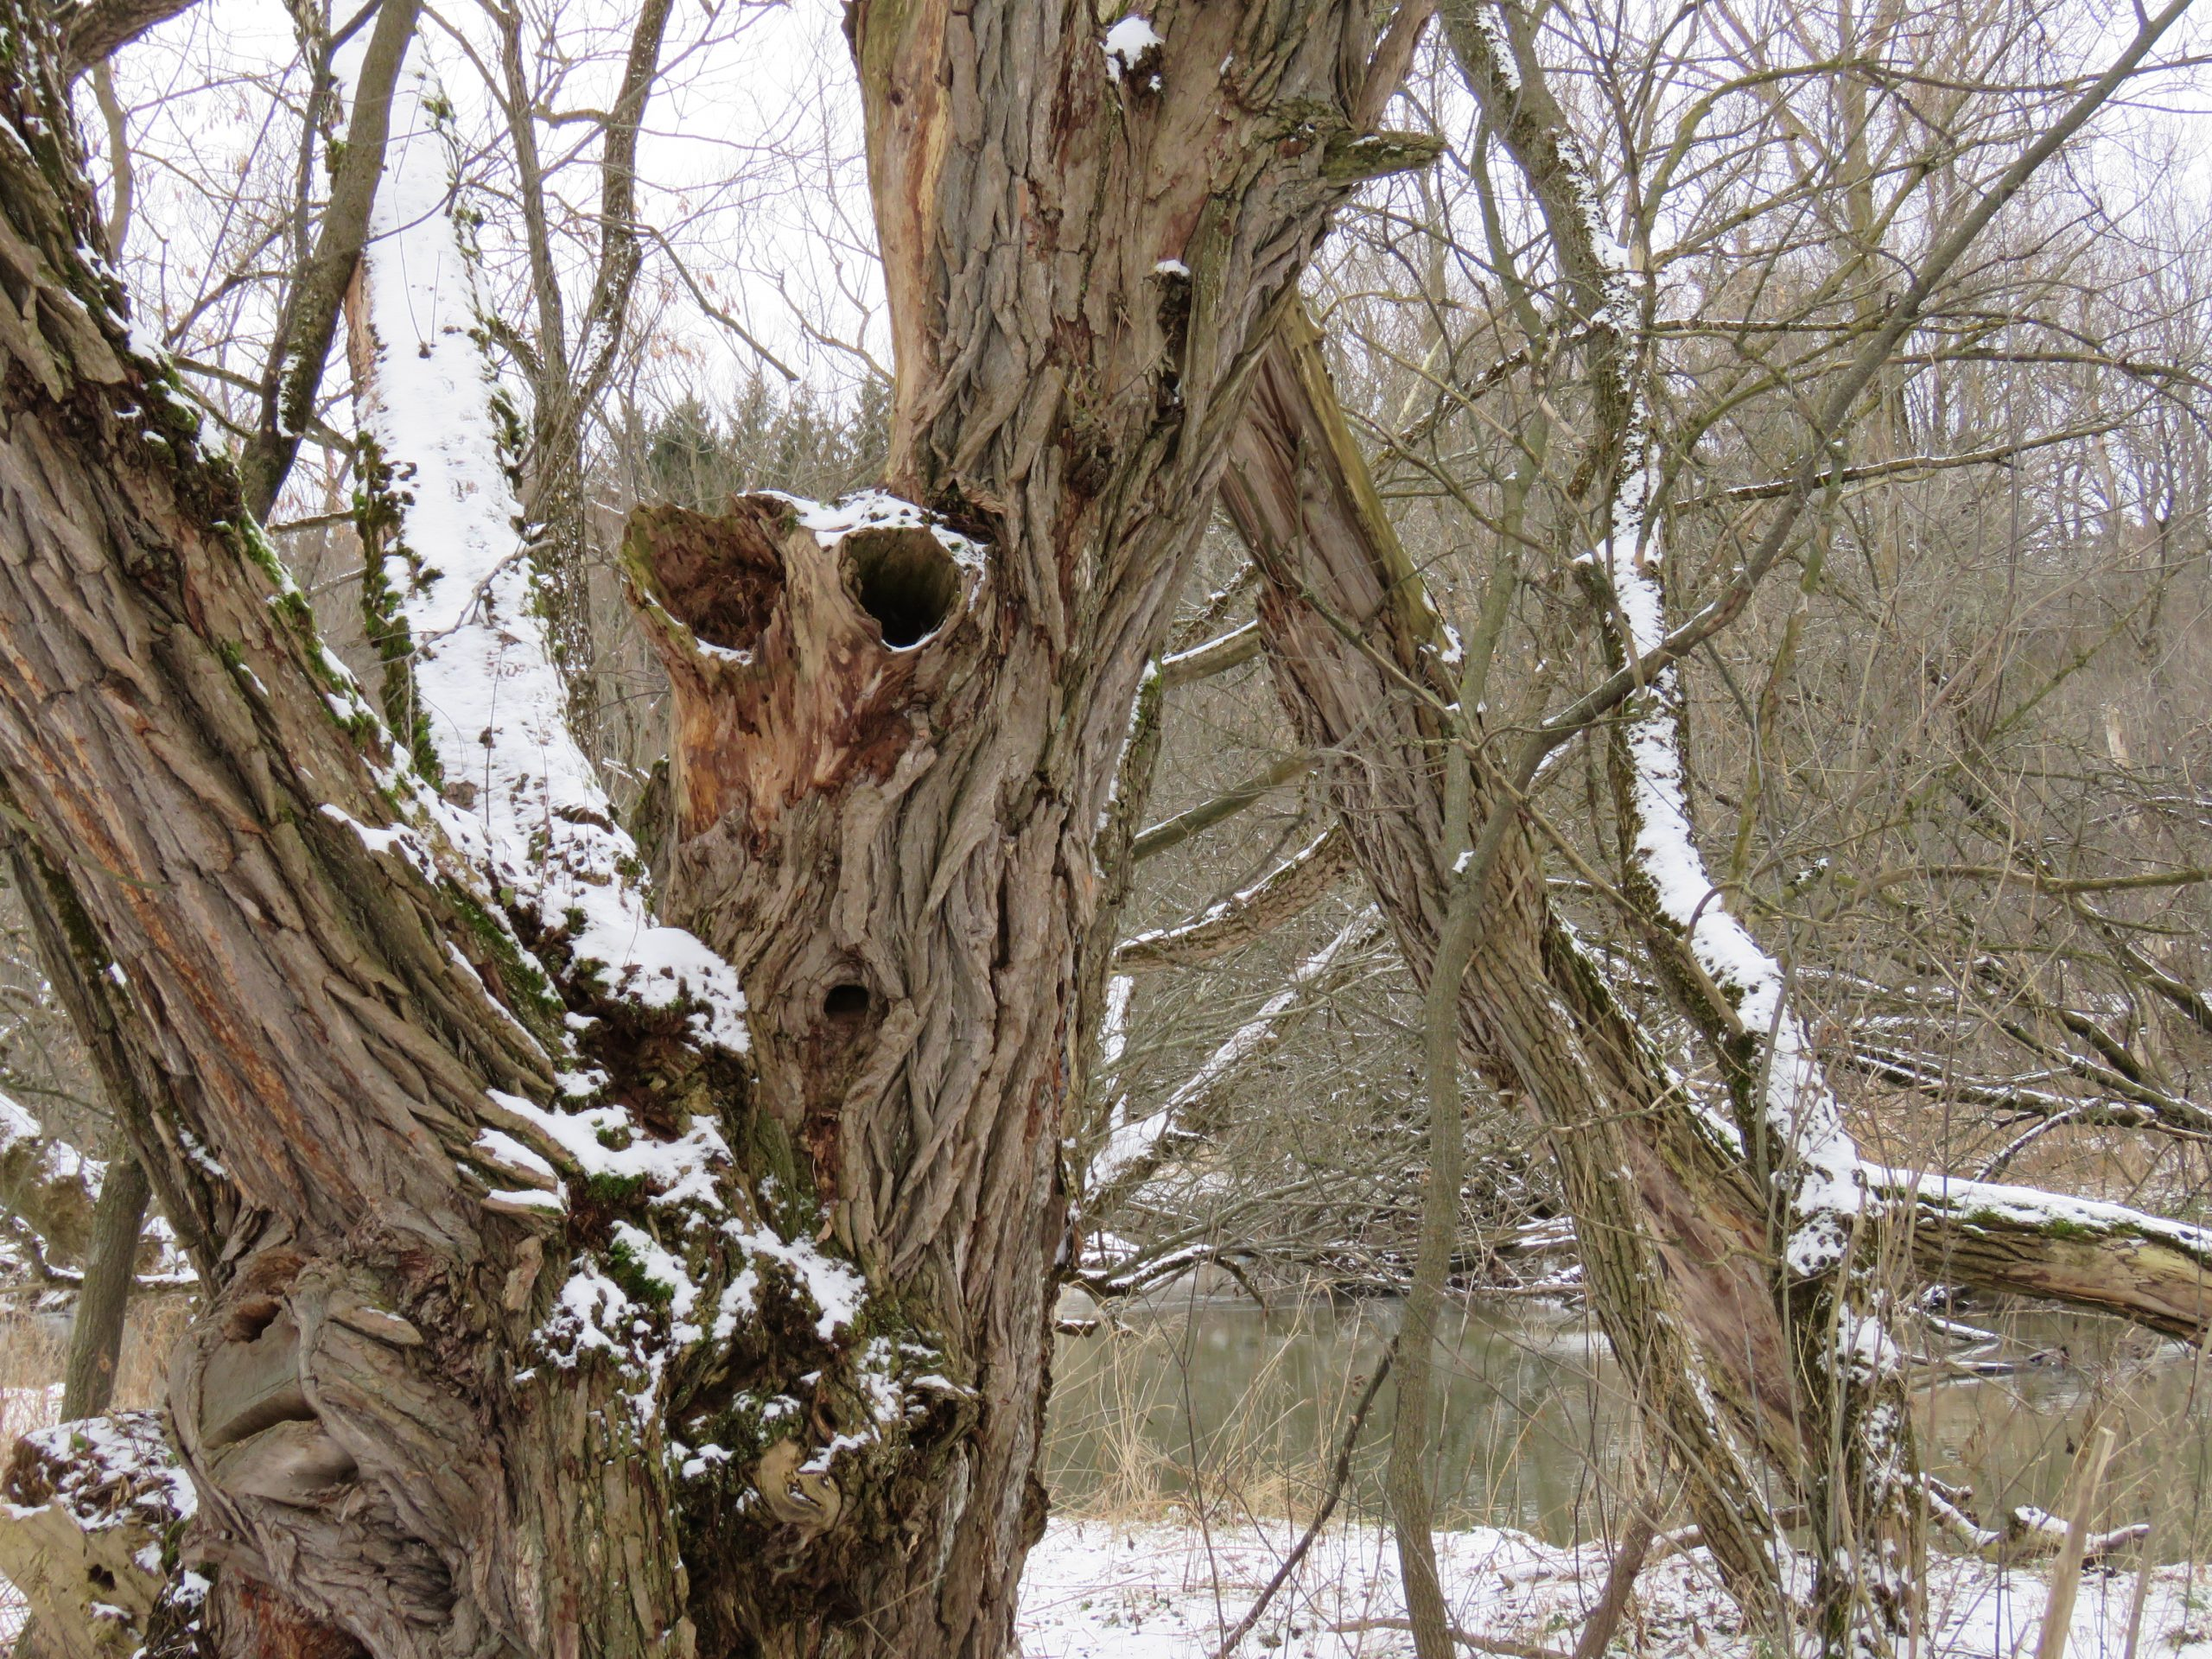 Faces hiding in the woods